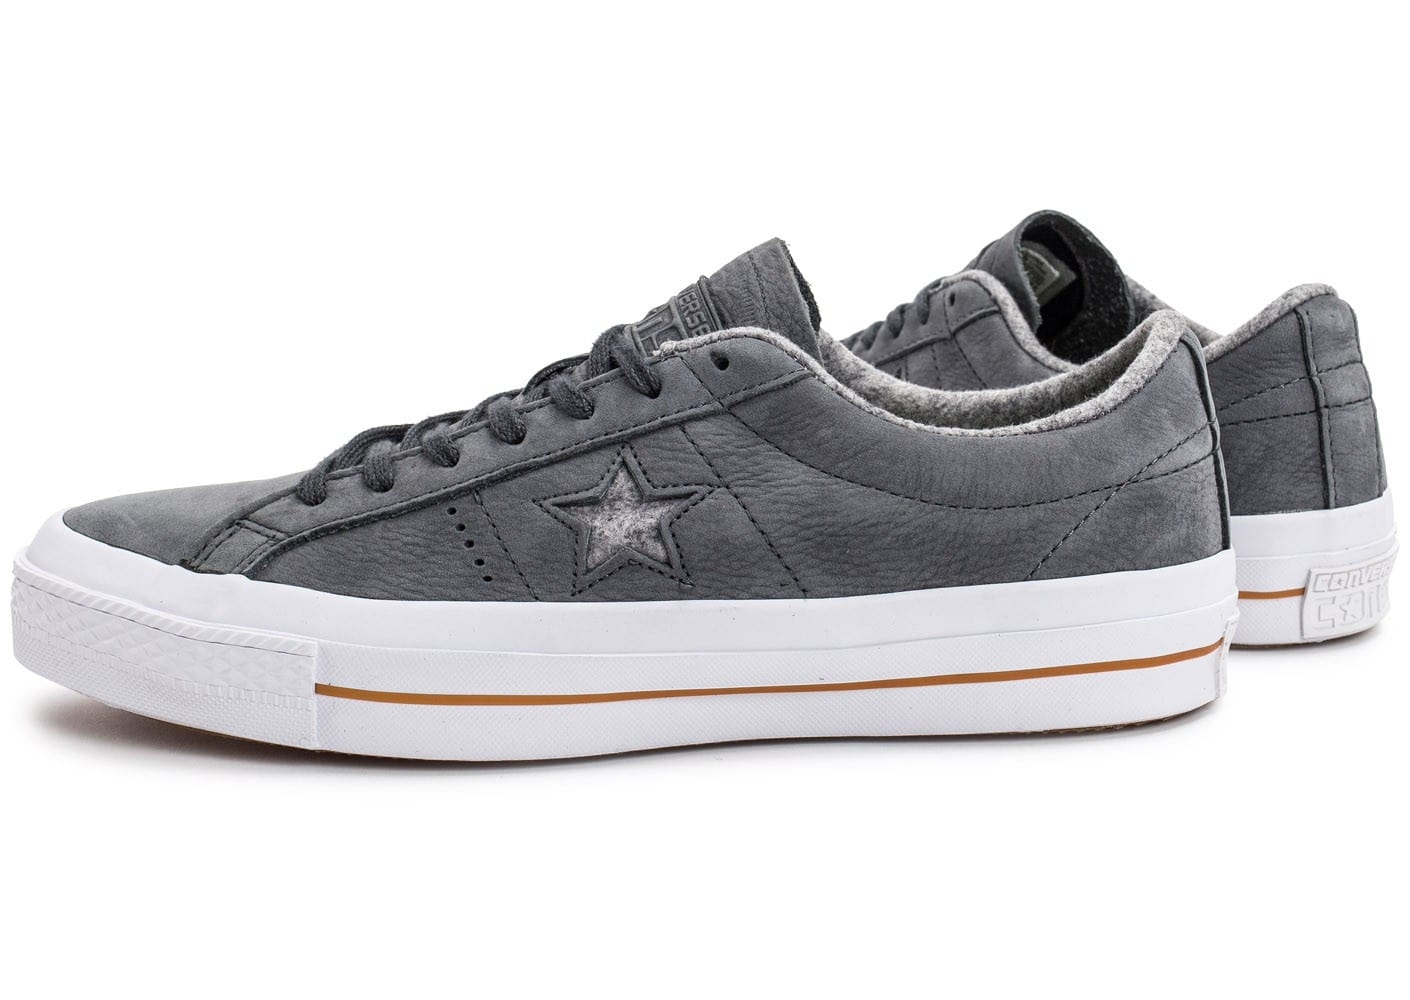 converse one star nubuck grise chaussures homme chausport. Black Bedroom Furniture Sets. Home Design Ideas